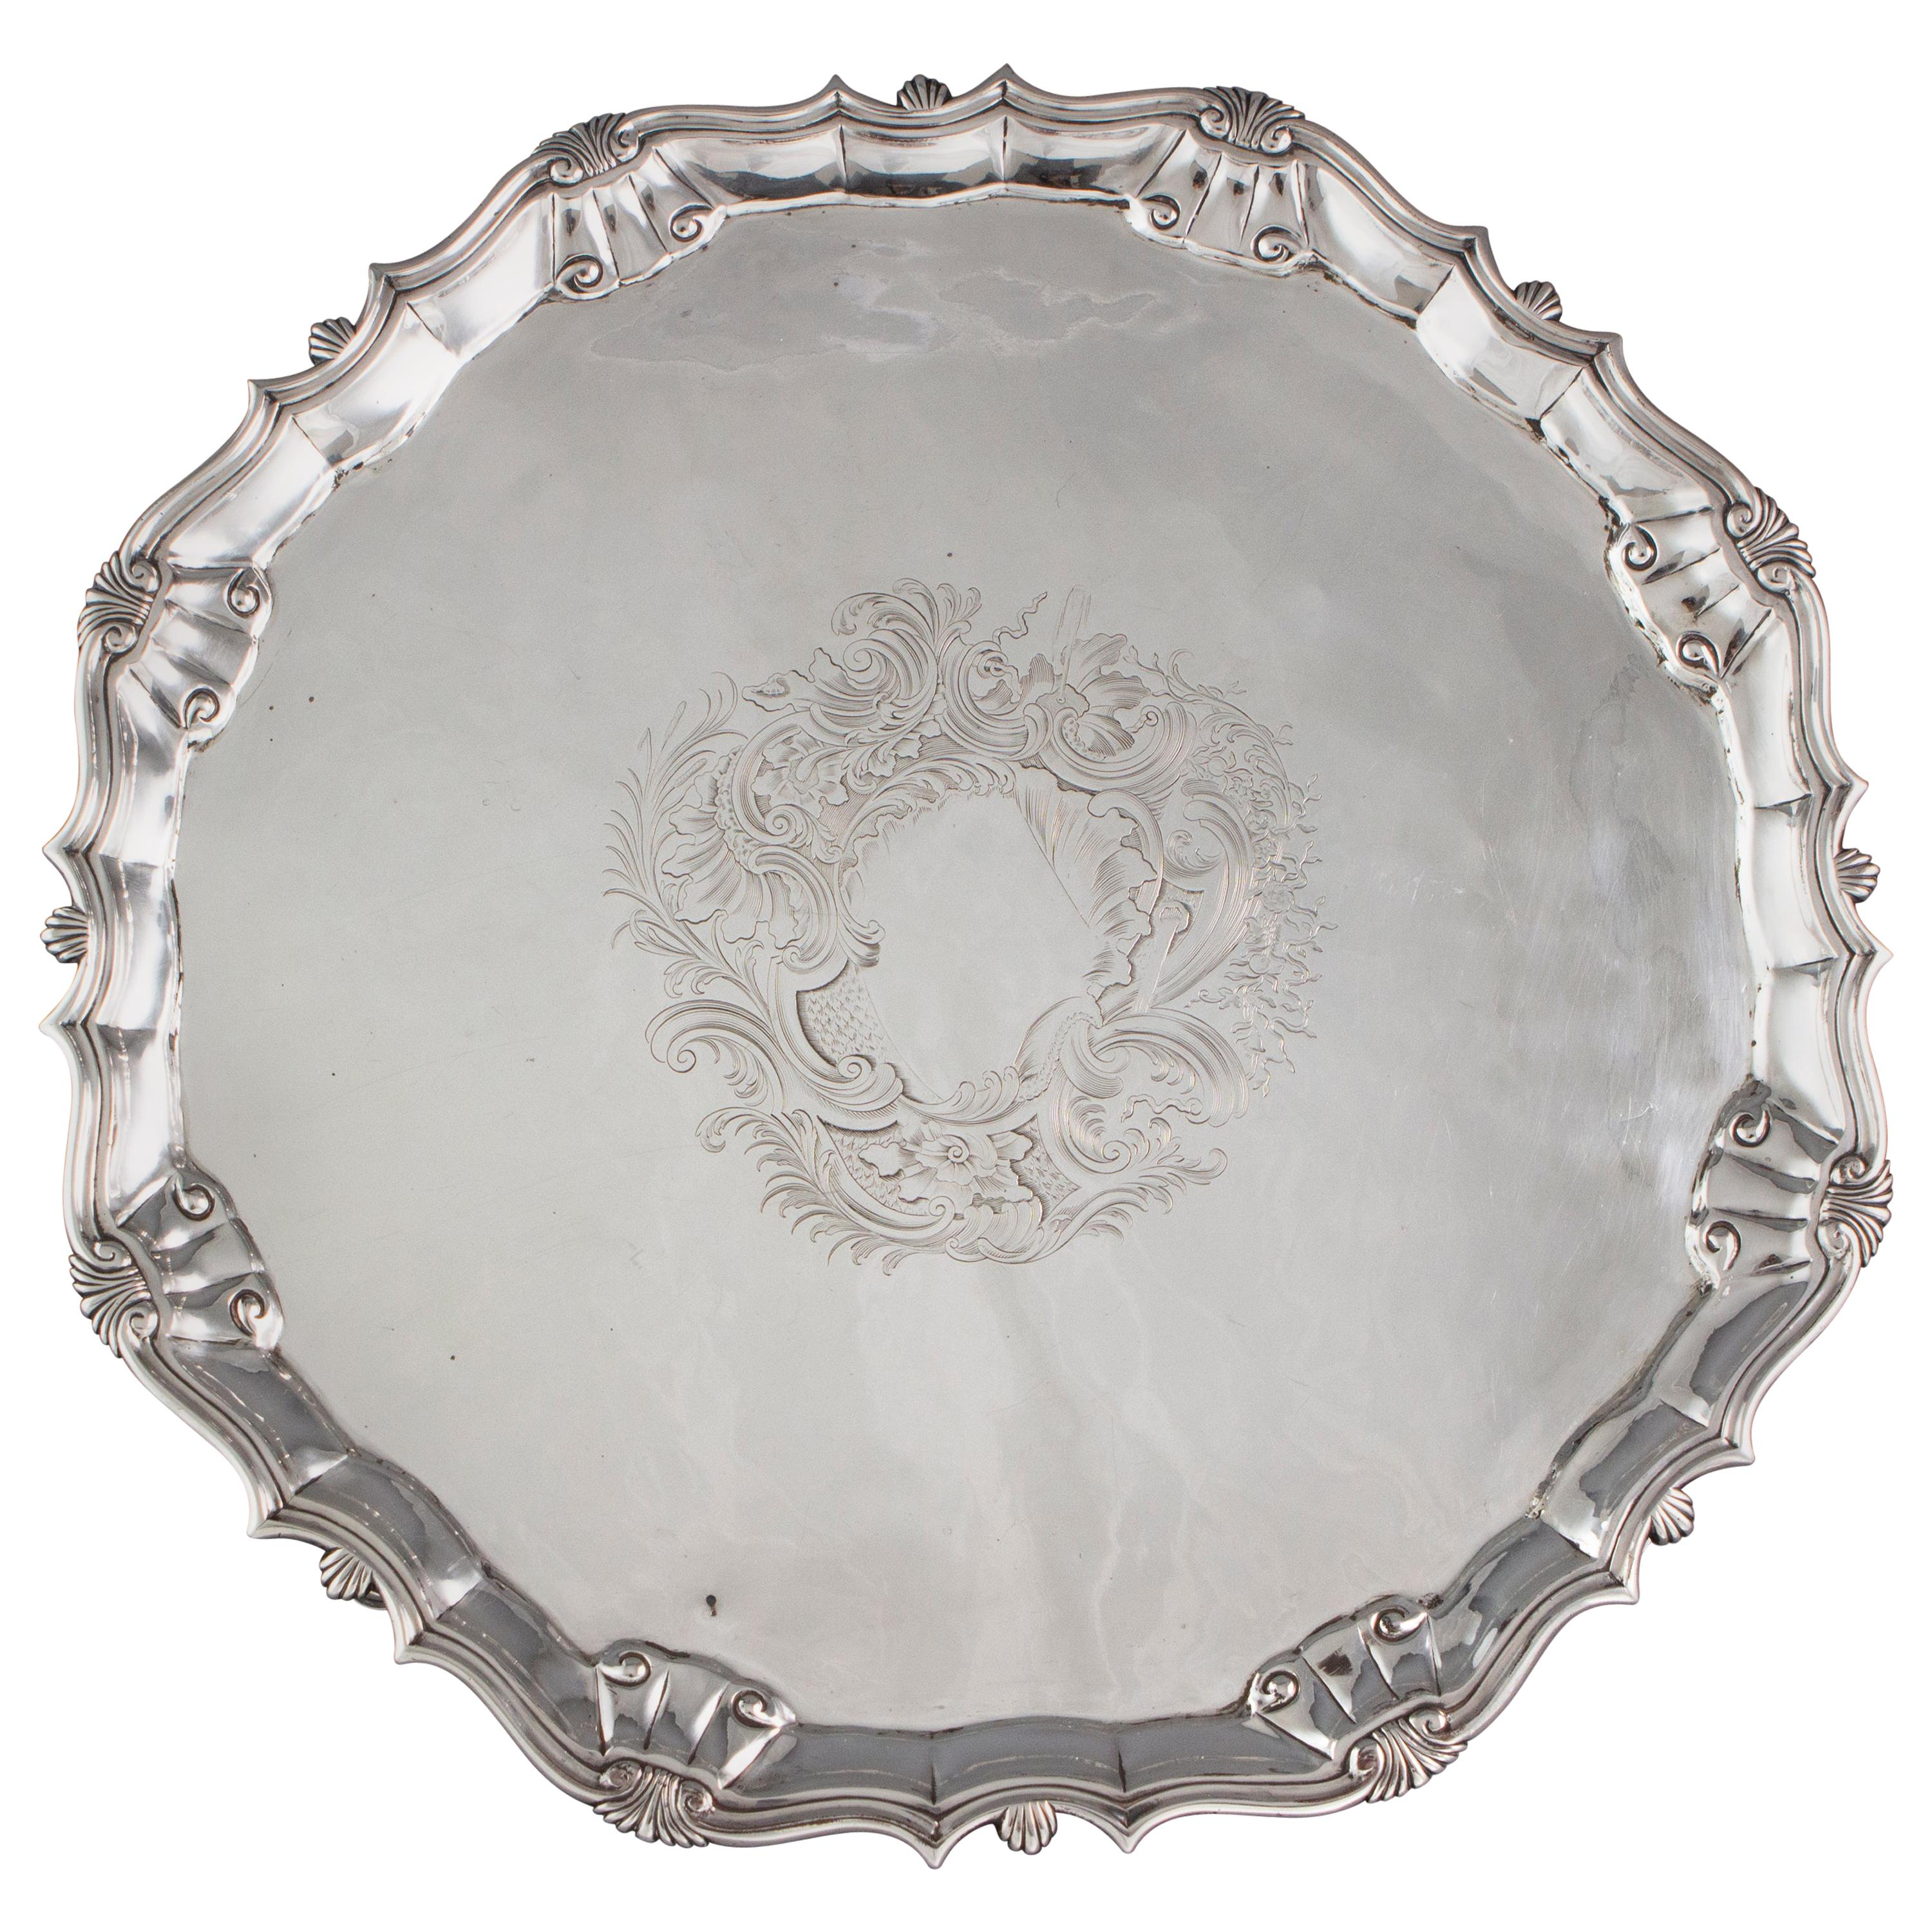 Large George II Silver Salver or Tray, London, 1750 by John Le Sage